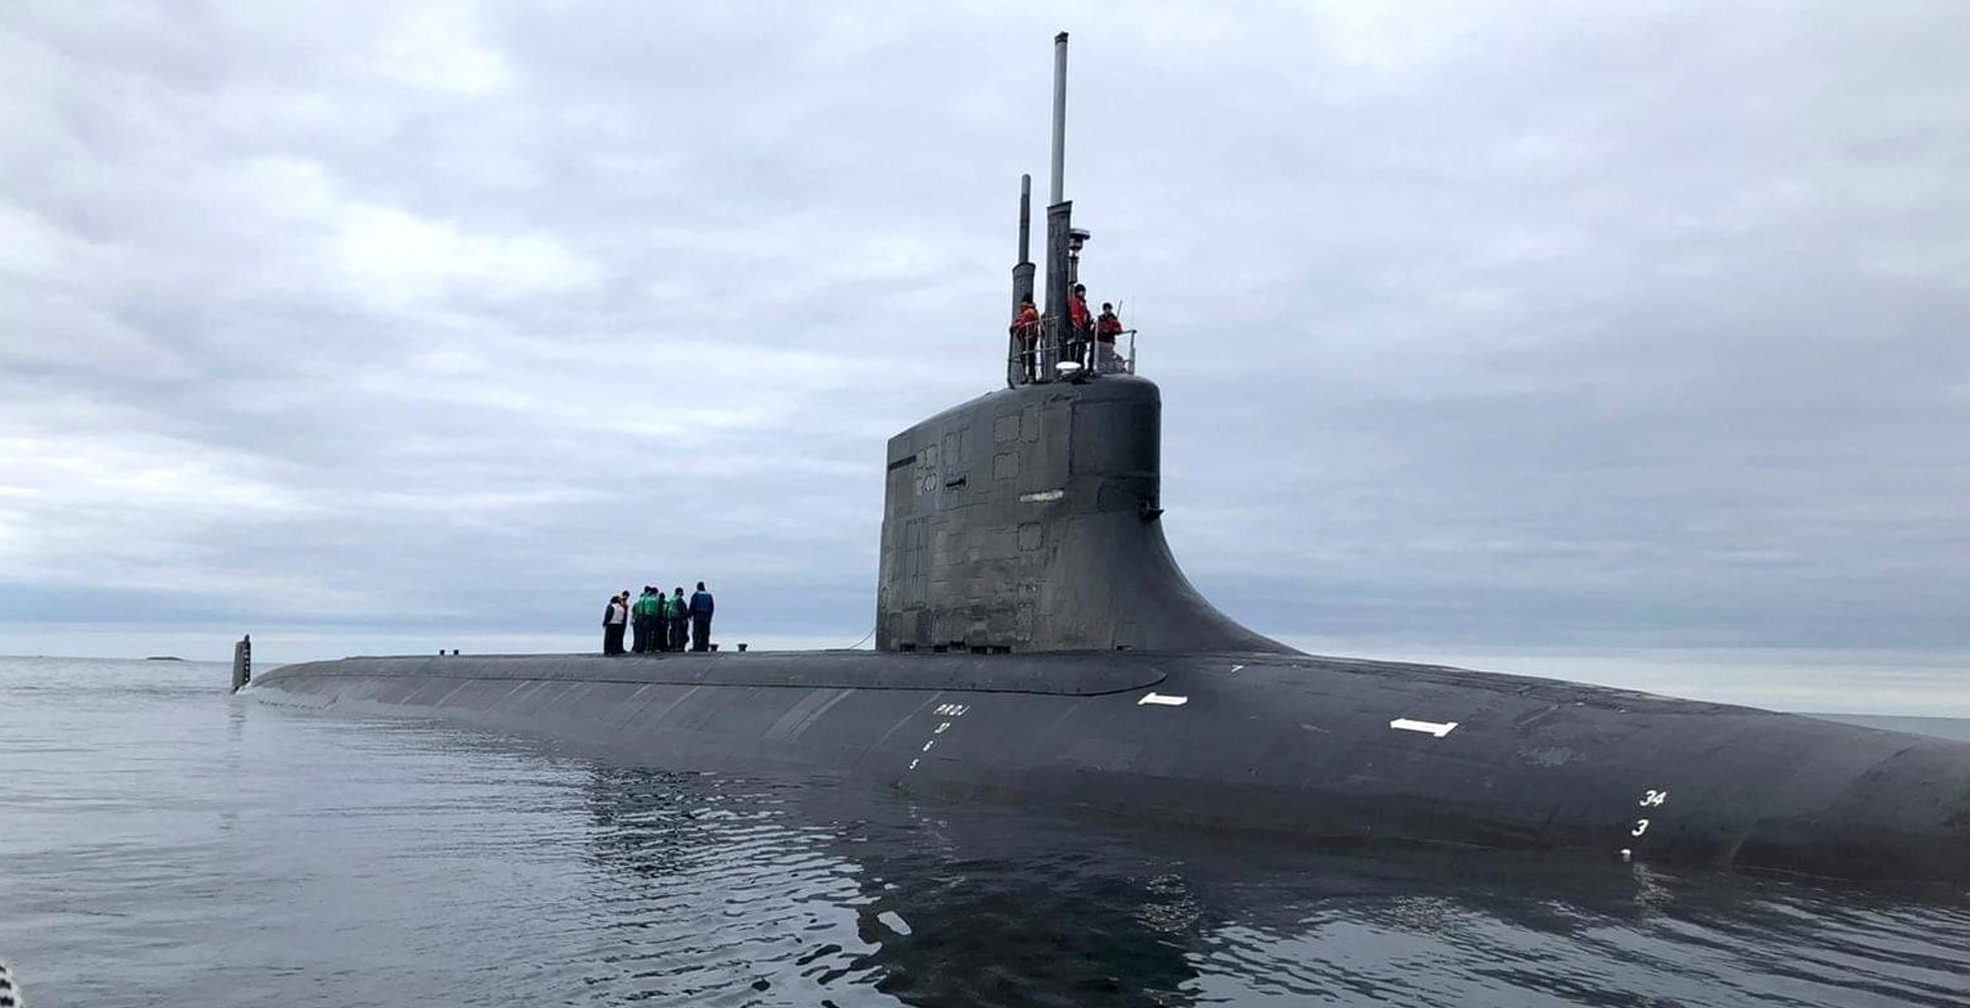 If Russia Invades Europe, NATO Could Sweep The Seas Of Russian Ships